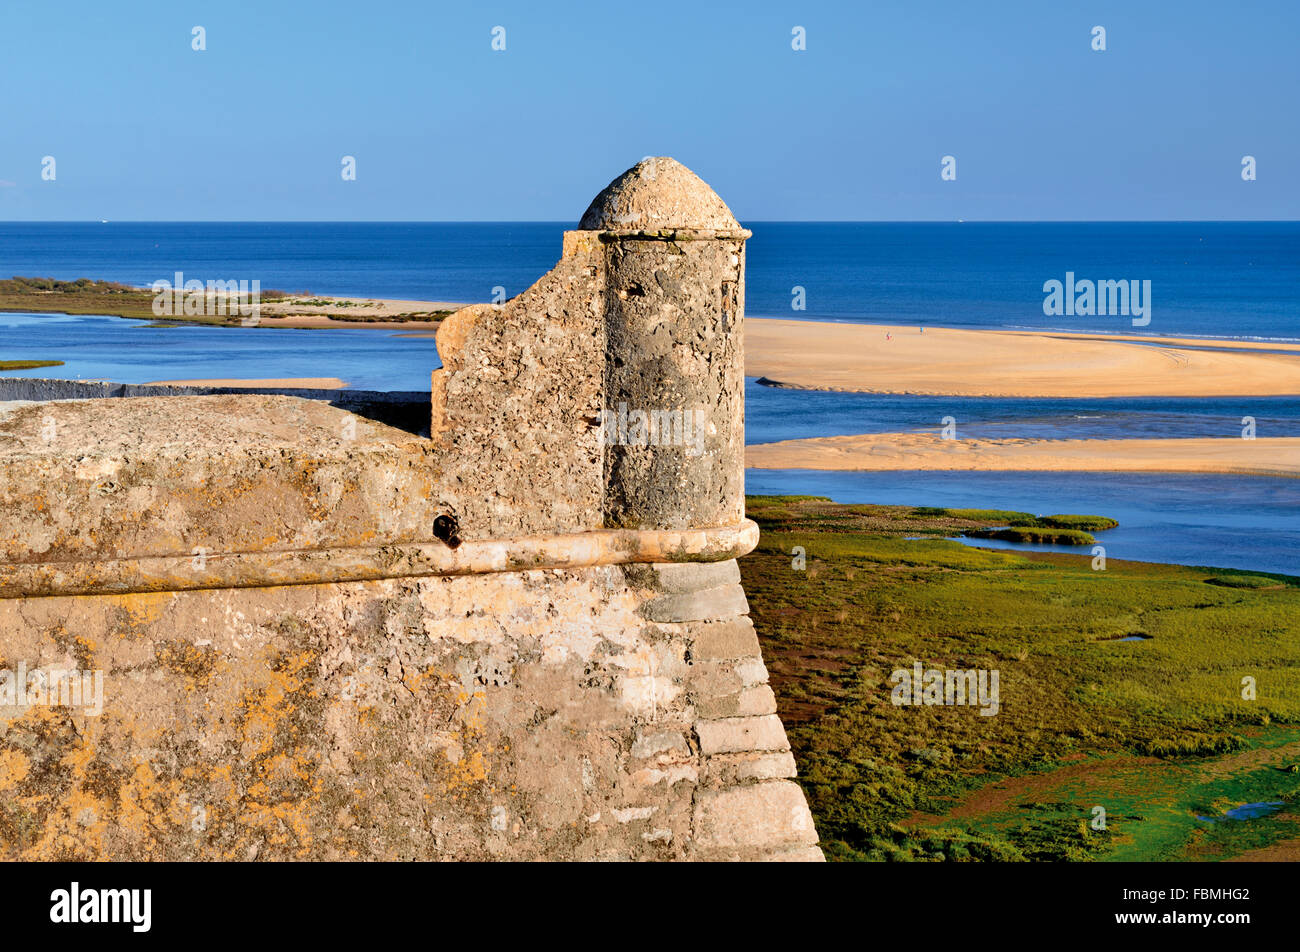 Portugal: Detail of the fortress in Cacela Velha with ocean view to Ria Formosa - Stock Image